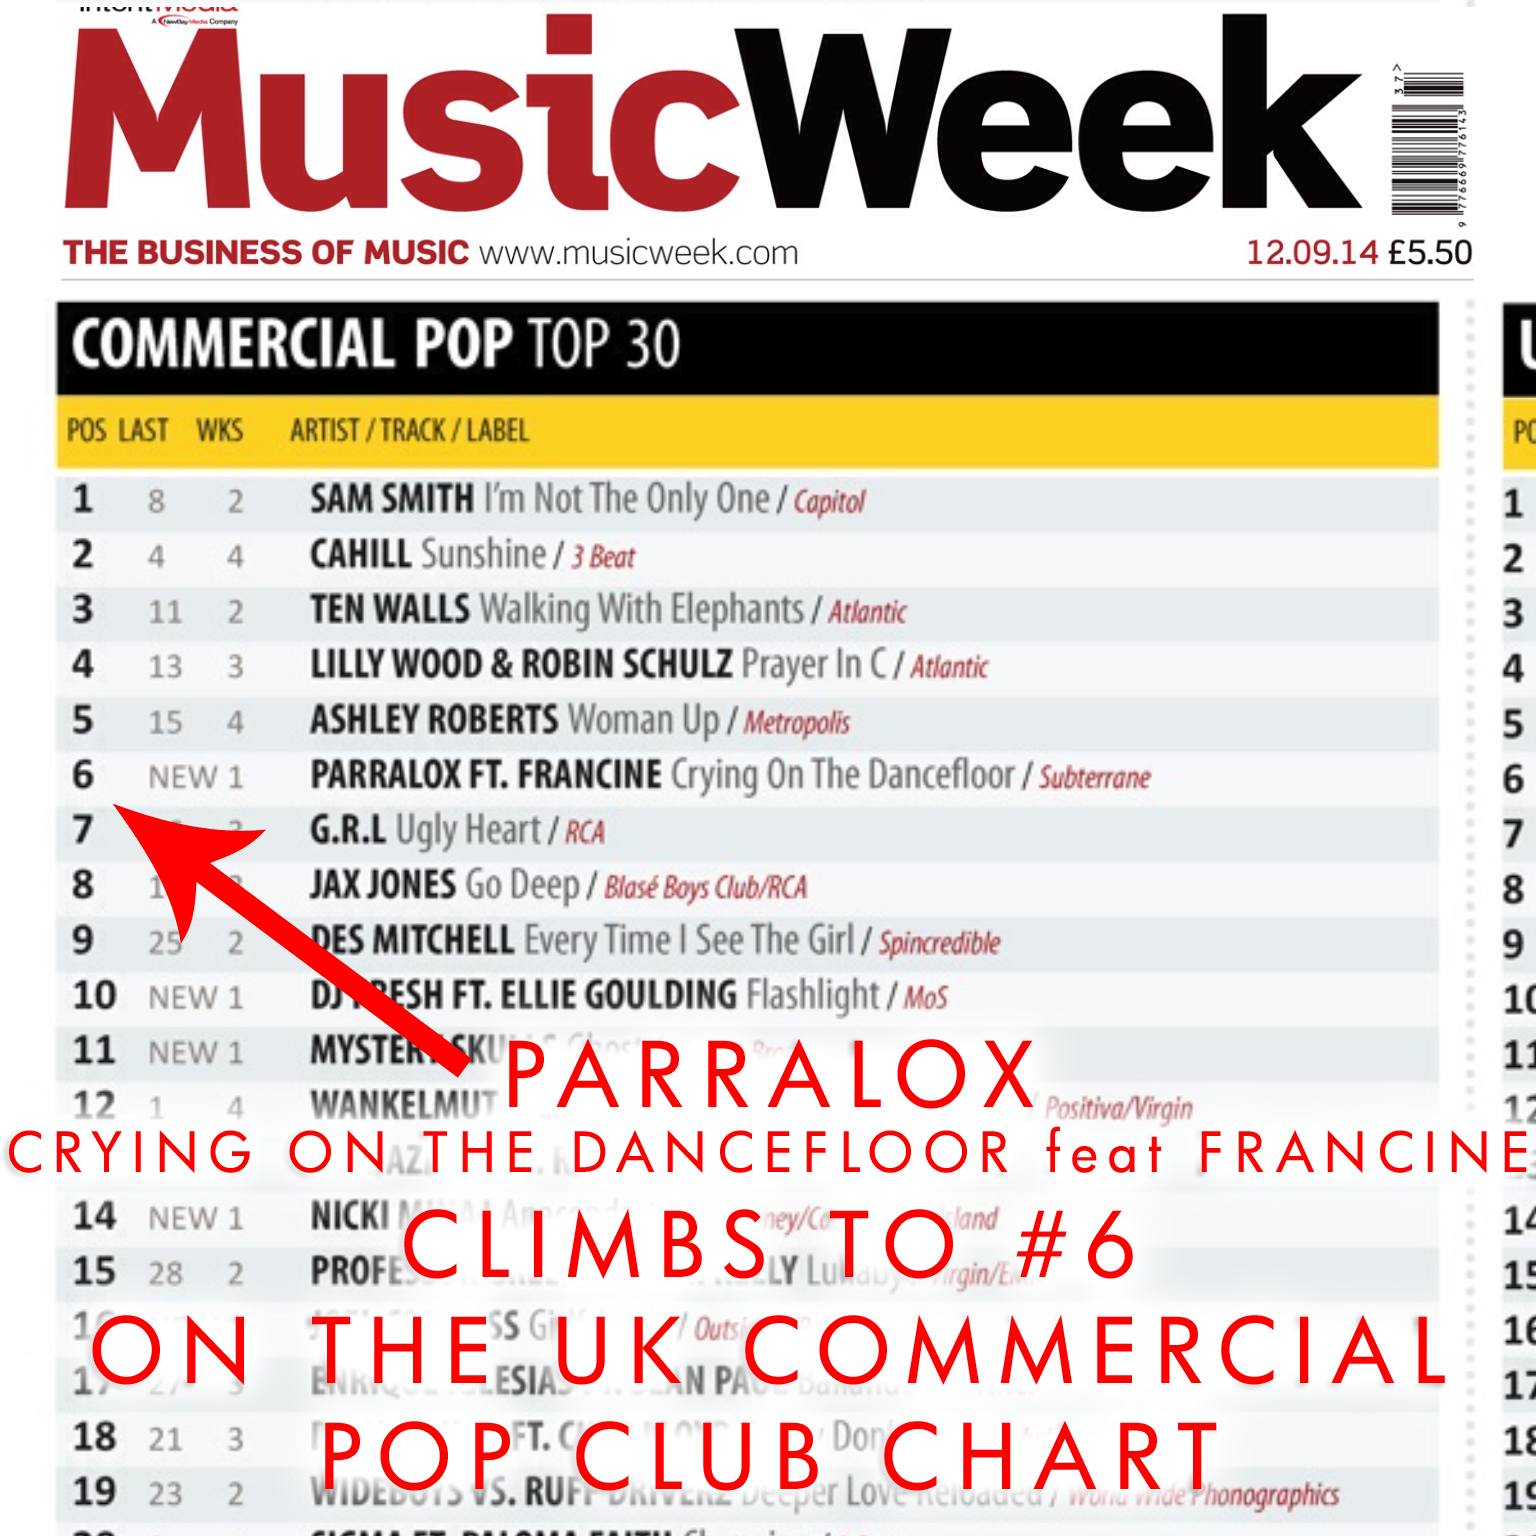 Parralox climbs to #6 on the UK Music Week Charts!